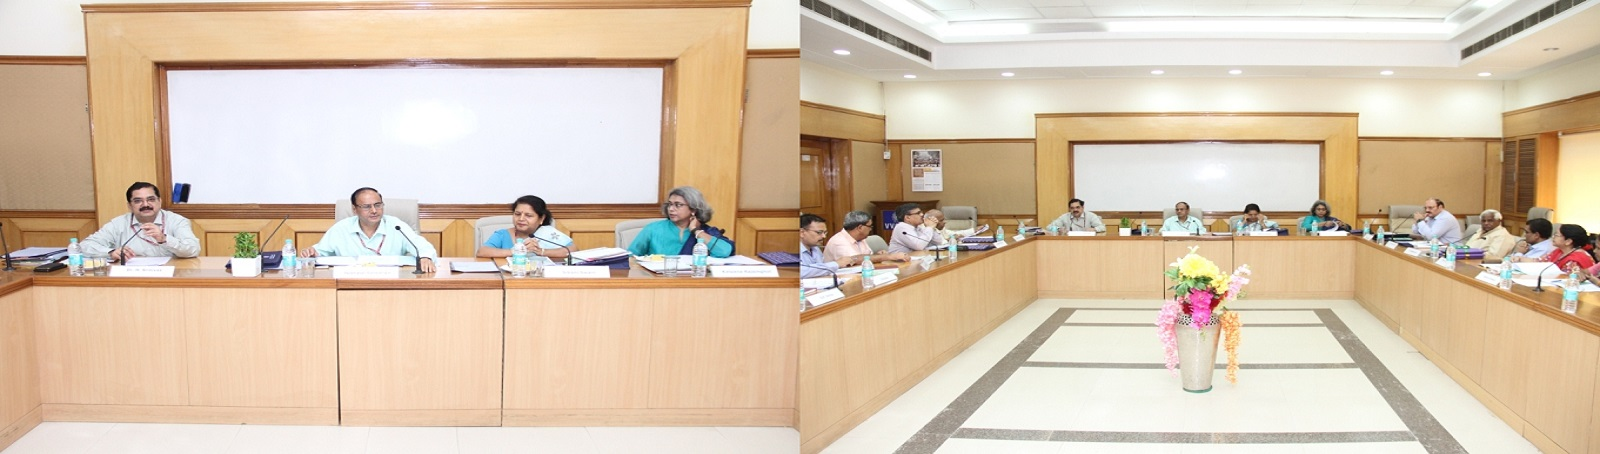 A Meeting of the Executive Council of the V.V. Giri National Labour Institute was held under the Chairpersonship of Shri Heeralal Samariya, Secretary, Ministry of Labour & Employment (MOLE), and Chairperson, Executive Council, VVGNLI at the VVGNLI, Noida